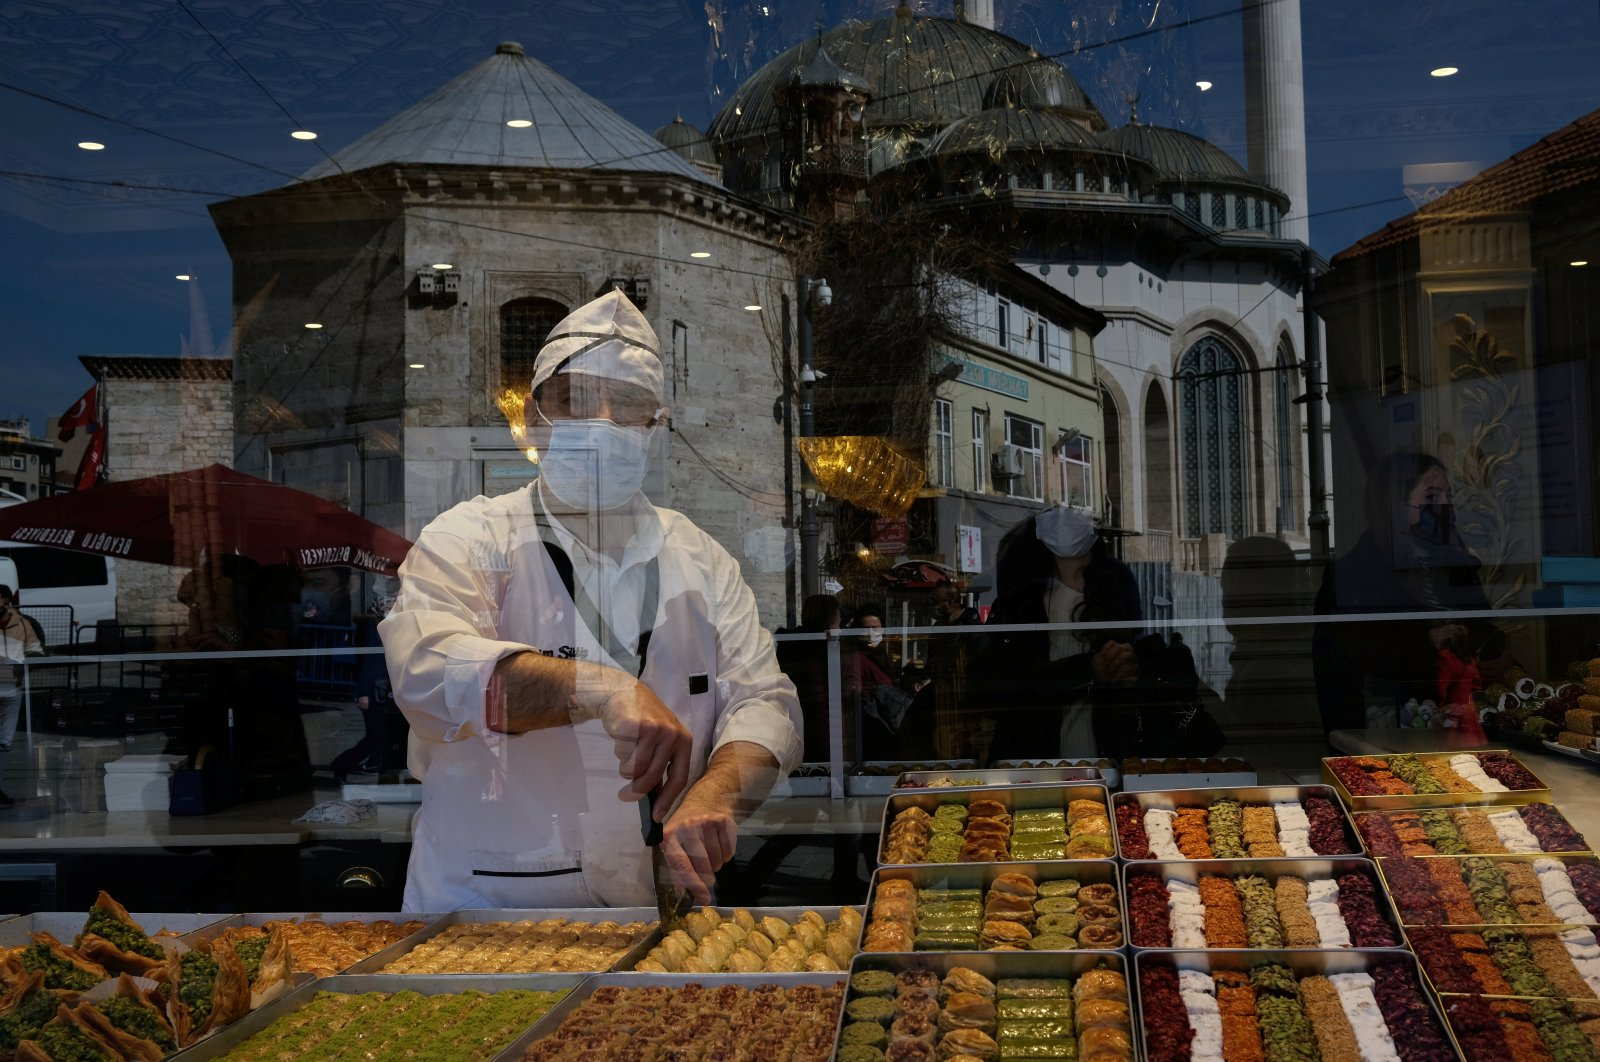 A restaurant employee wearing a protective mask prepares sweets for a customer as the coronavirus disease (COVID-19) outbreak continues, in central Istanbul, Turkey March 4, 2021. (Reuters Photo)